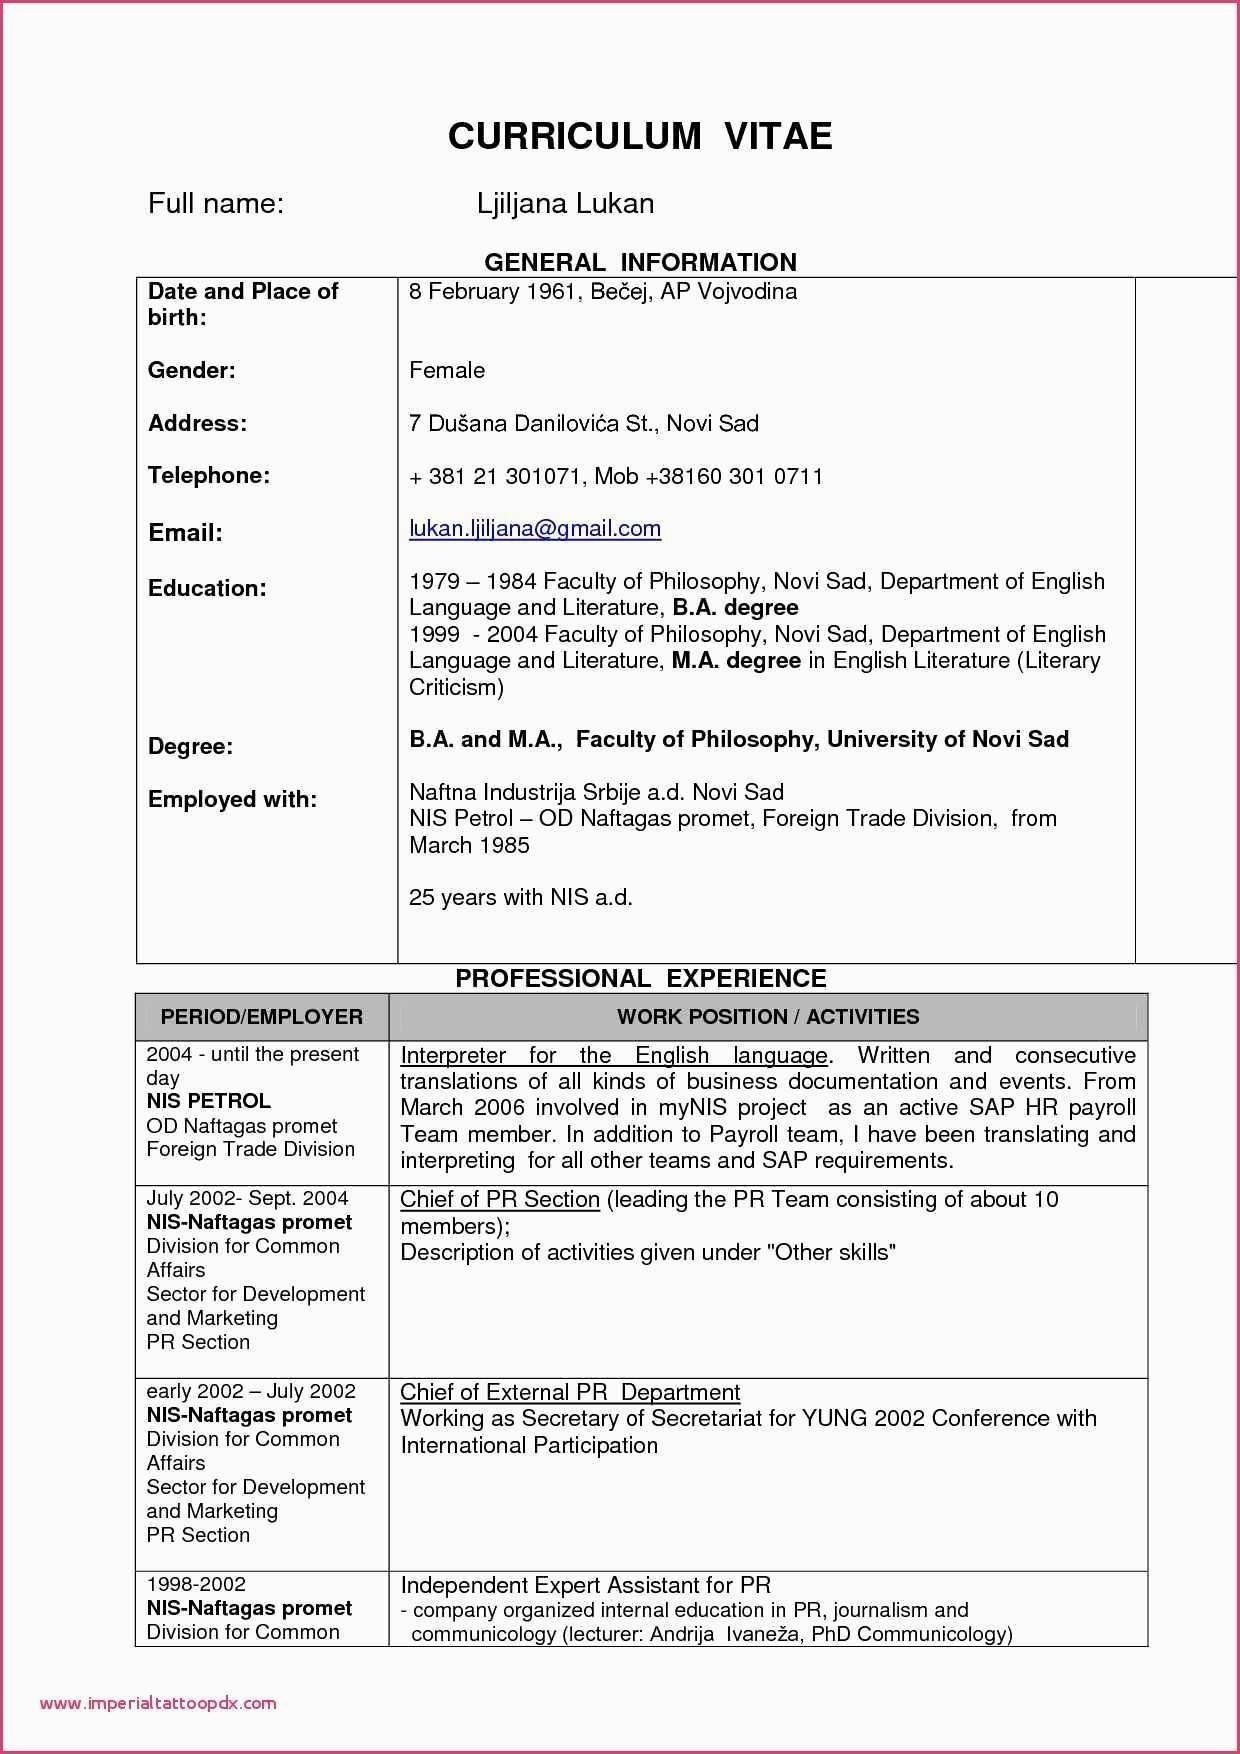 Academic Projects In Resume Example Unique Project Manager Resume Examples Sample Project Manager Curriculum Vitae Student Resume Template Resume Examples